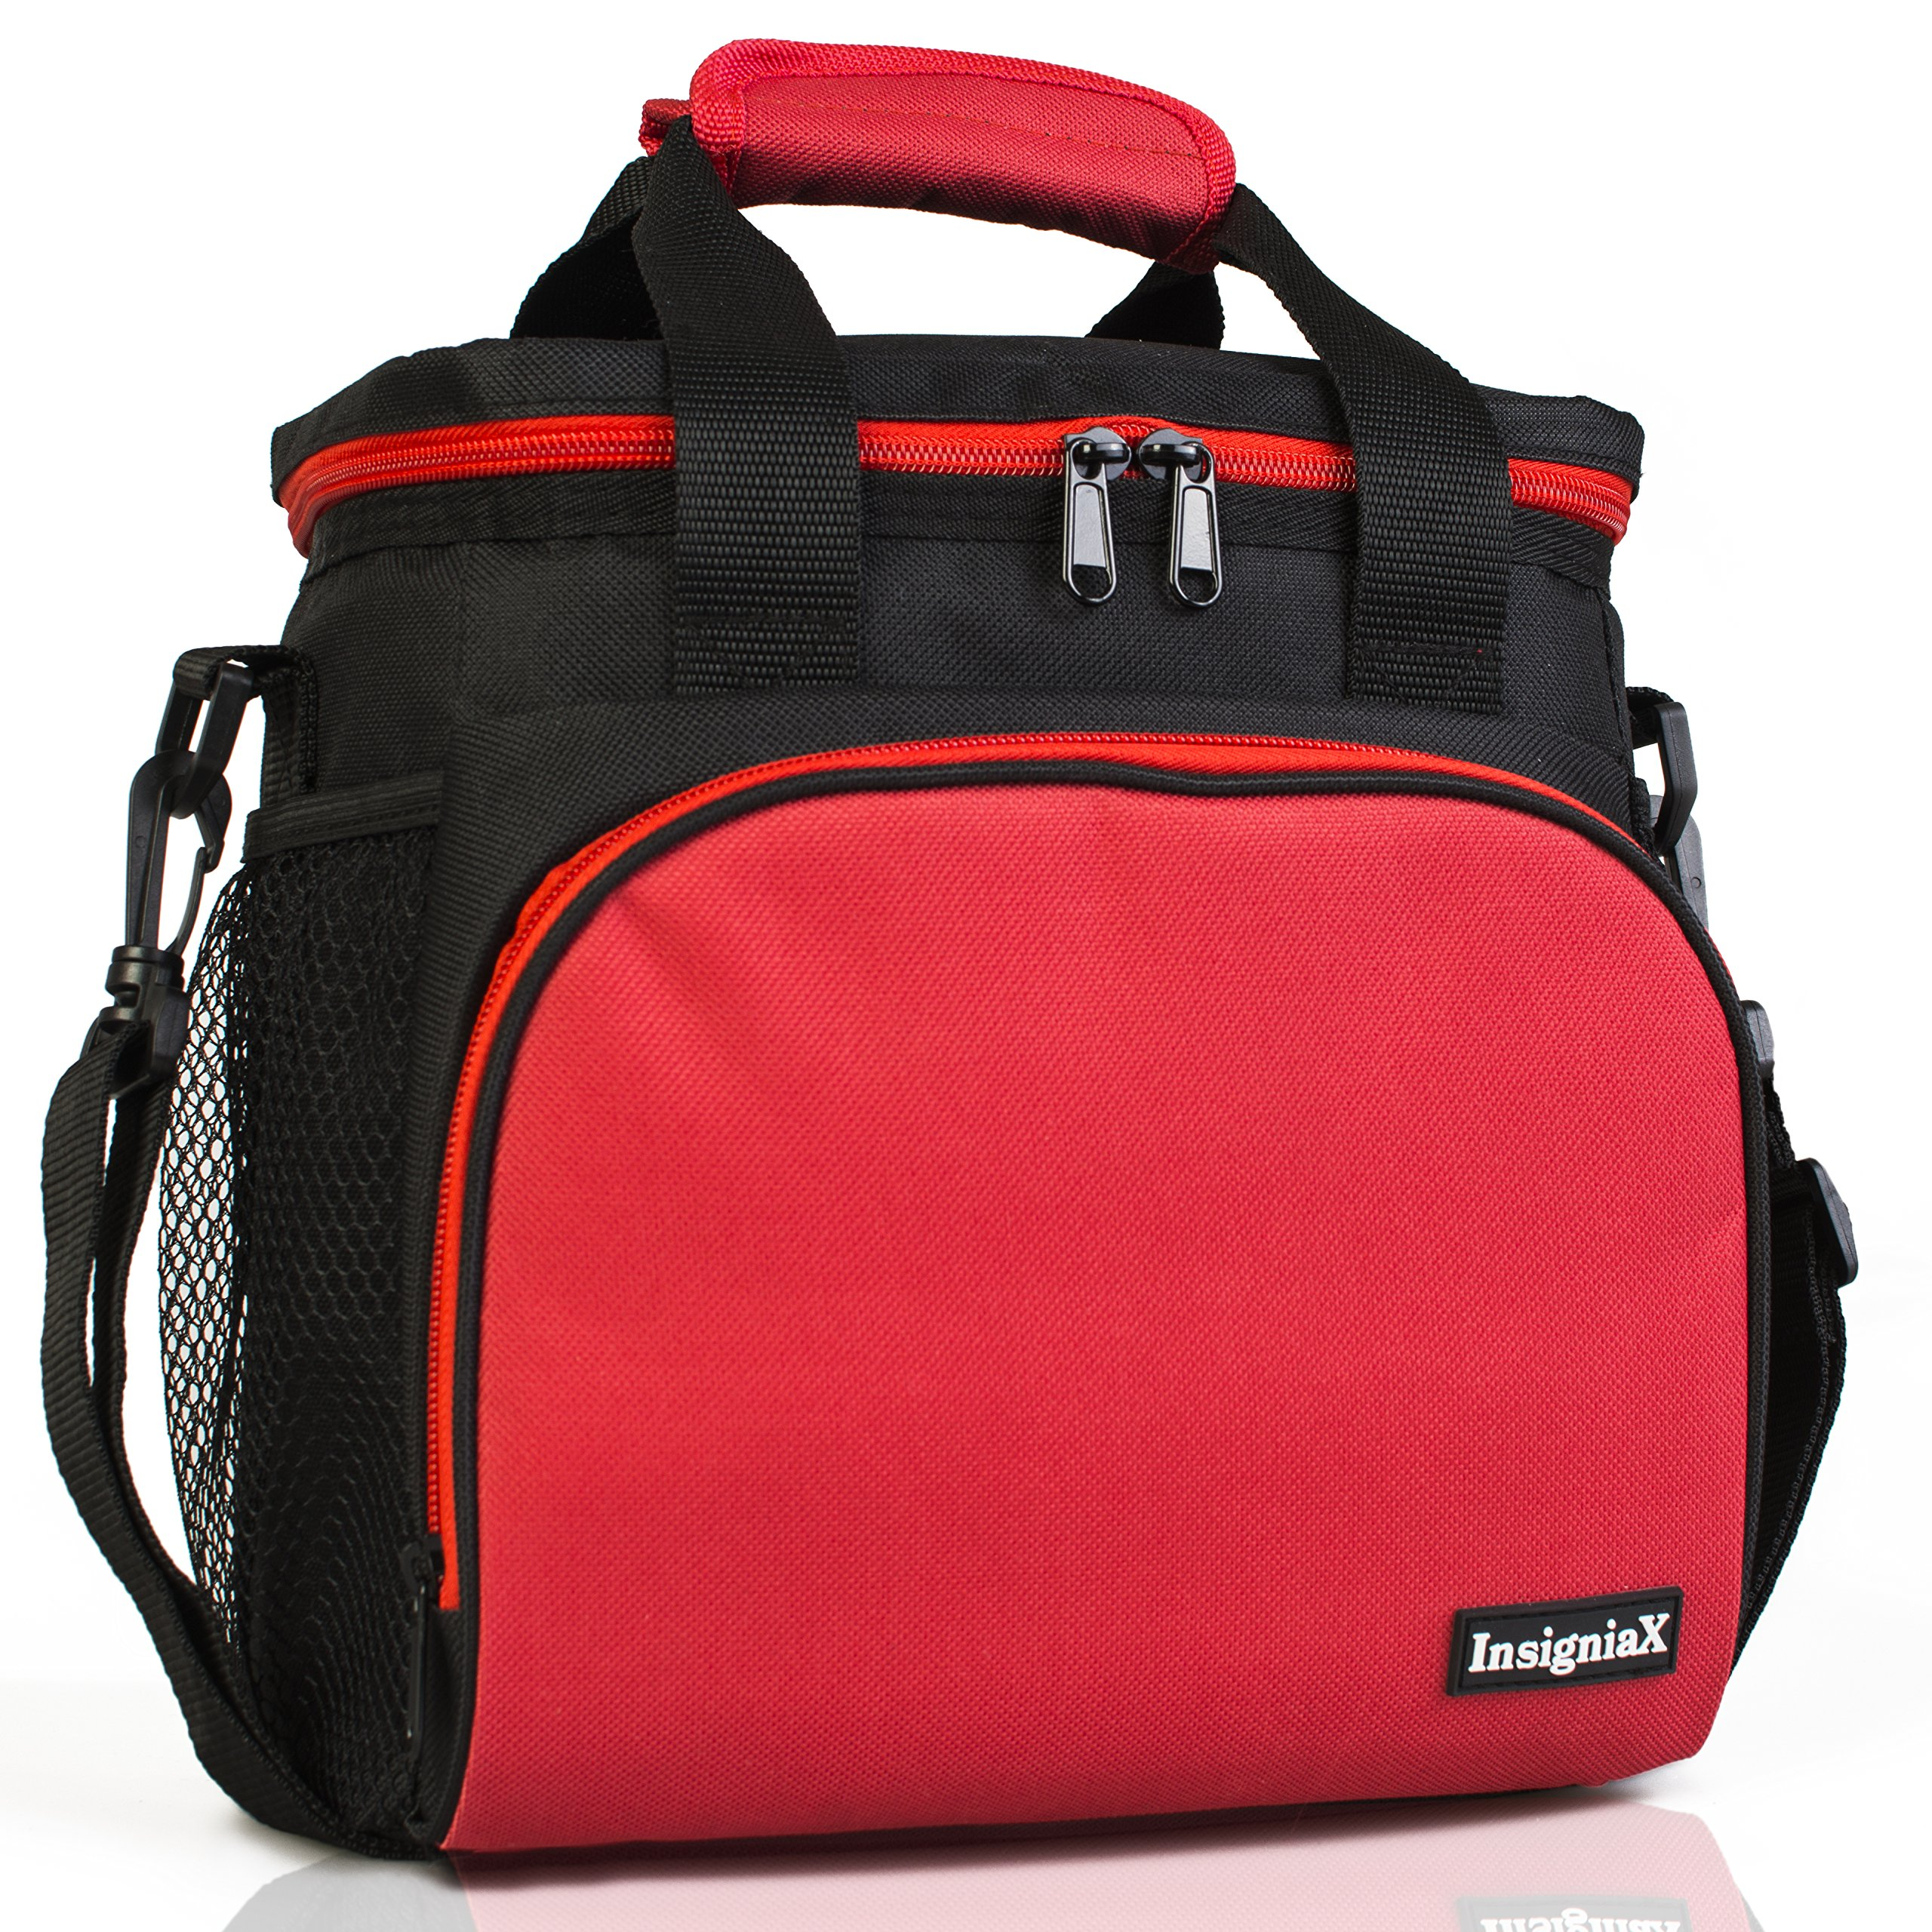 Insulated Lunch Bag: InsigniaX Adult Lunch Box For Work, Men, Women With Adjustable Strap, Front Pocket and Side Pocket [Unisex Lunch Bags] H: 8.4'' x W: 6.3'' x L:9.1'' (Black & Red)